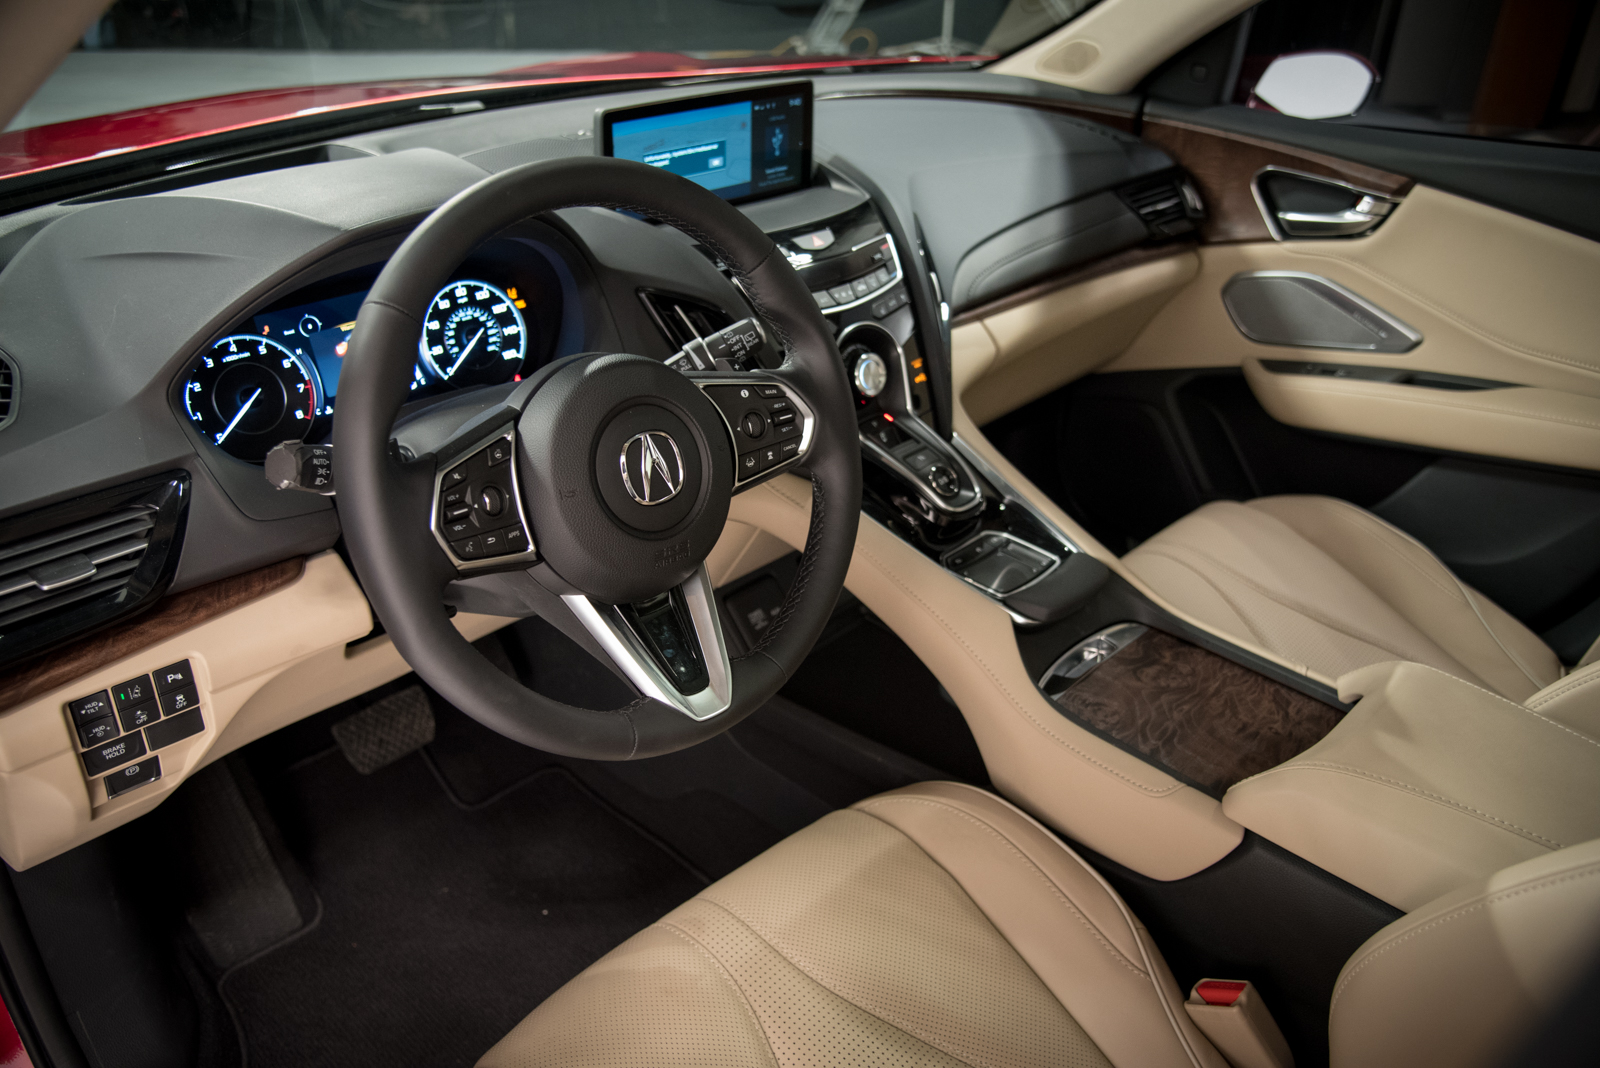 2019 Acura Rdx Ambient Lighting Used Car Reviews Cars